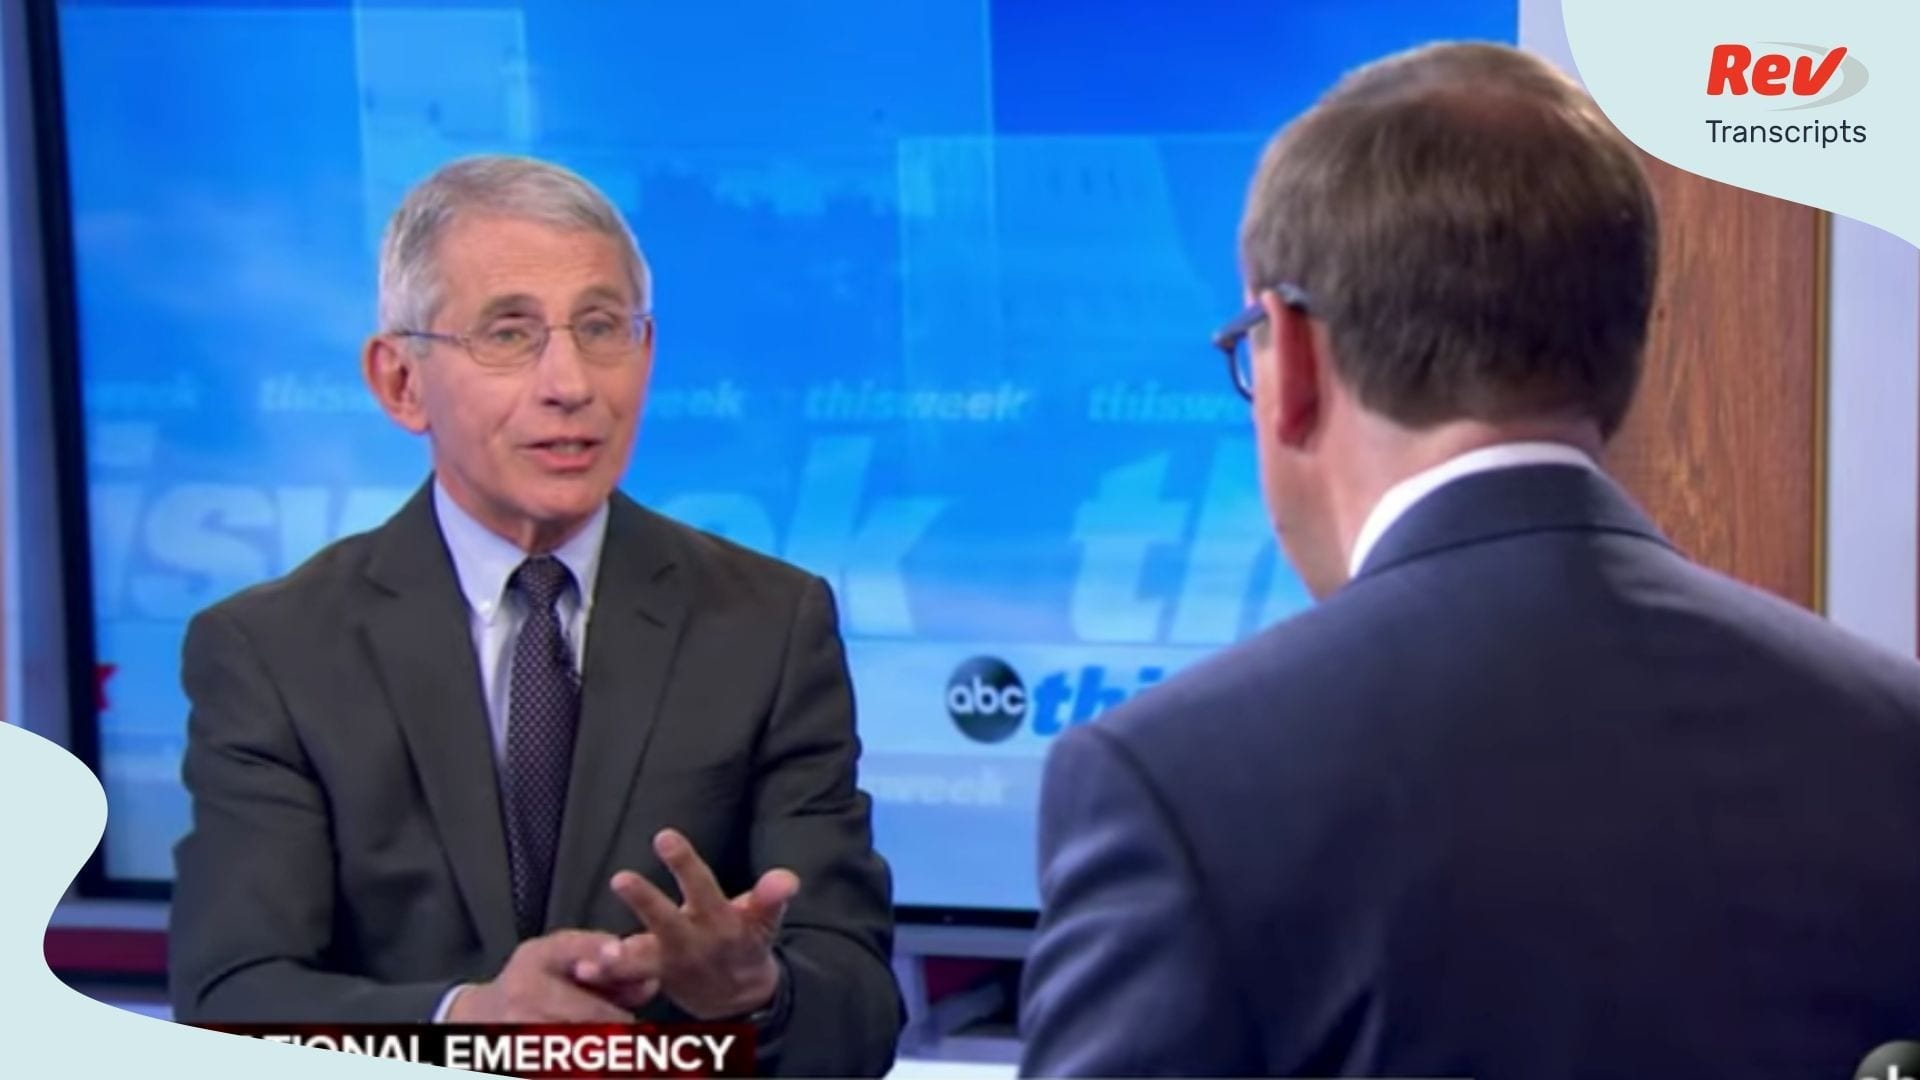 Dr. Anthony Fauci Interview Transcripts